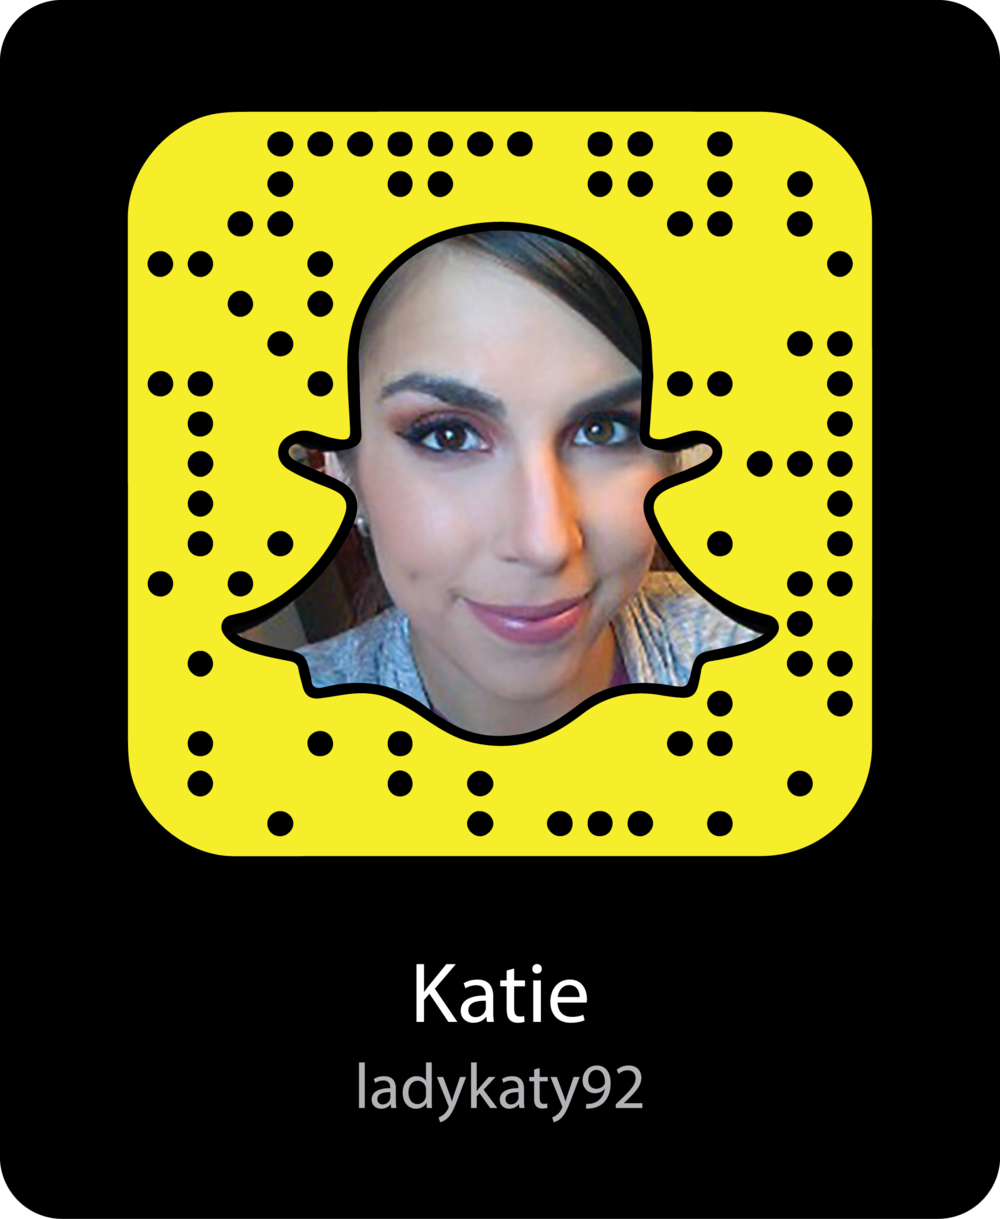 Ladykaty92-Beauty-Blogger-snapchat-snapcode.png